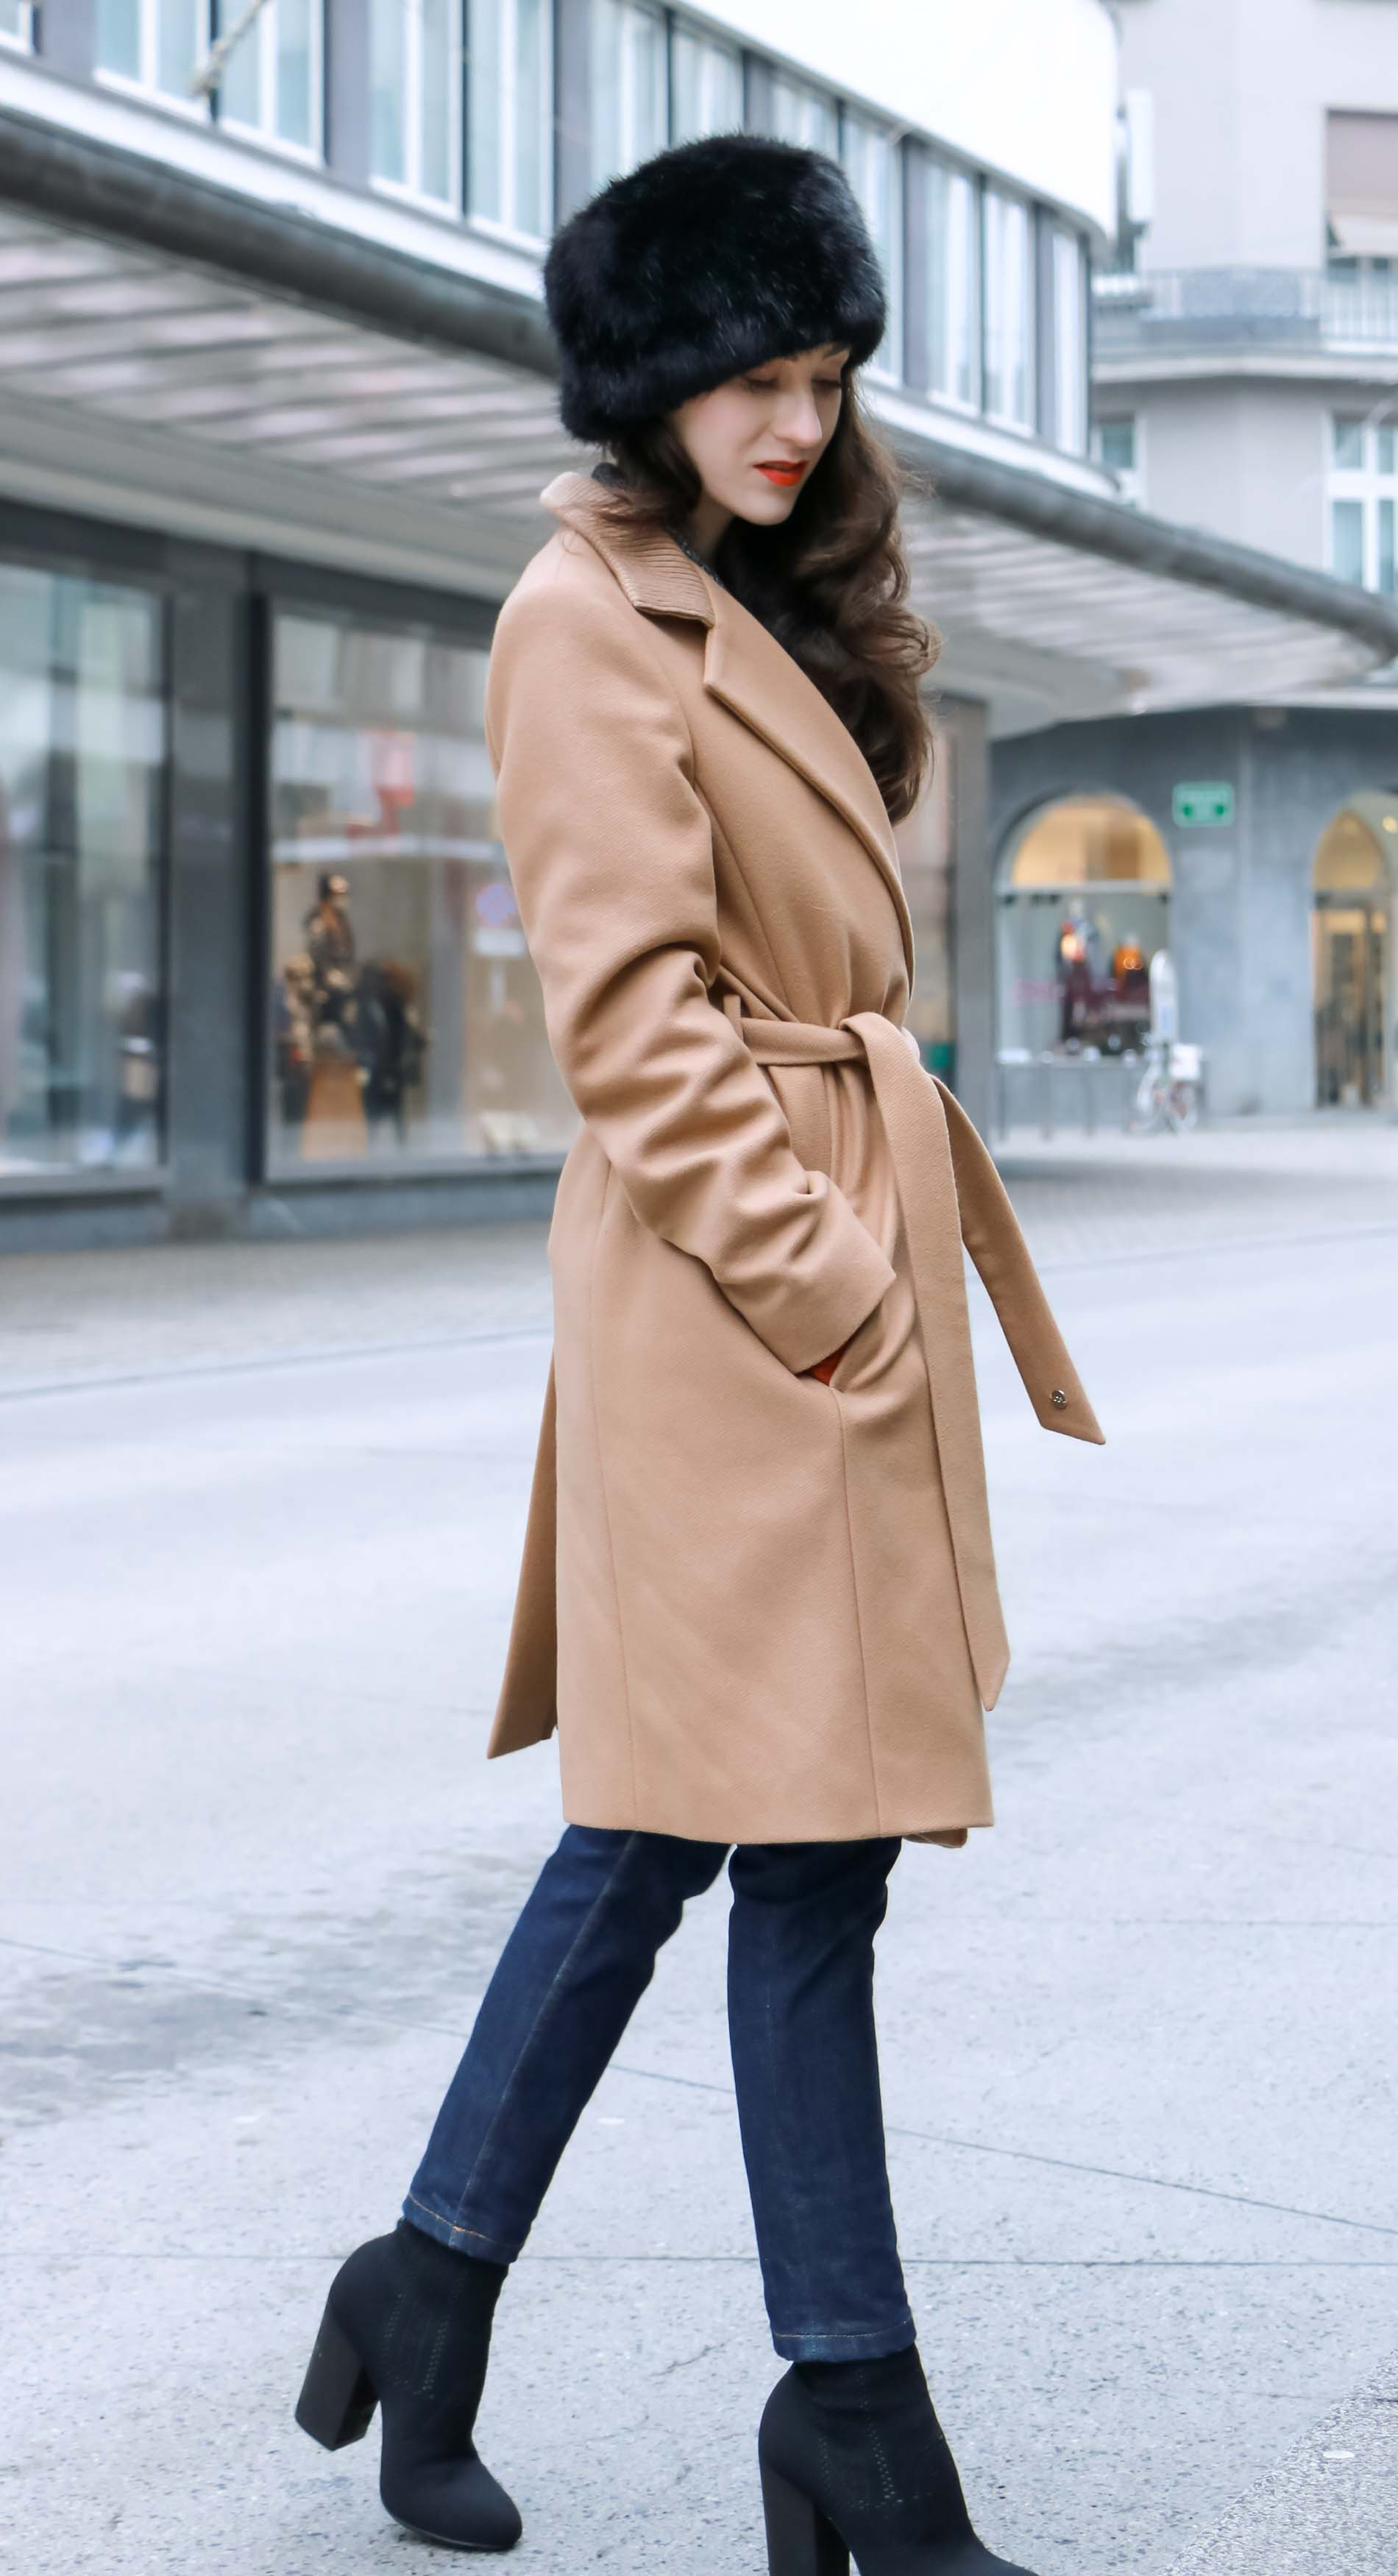 Veronika Lipar of Brunette from Wall Street dressed in wrap Escada camel coat, A.P.C. dark tapered denim jeans, black sock boots from Elena Iachi, black fur hat and small black top handle bag while crossing street in Ljubljana